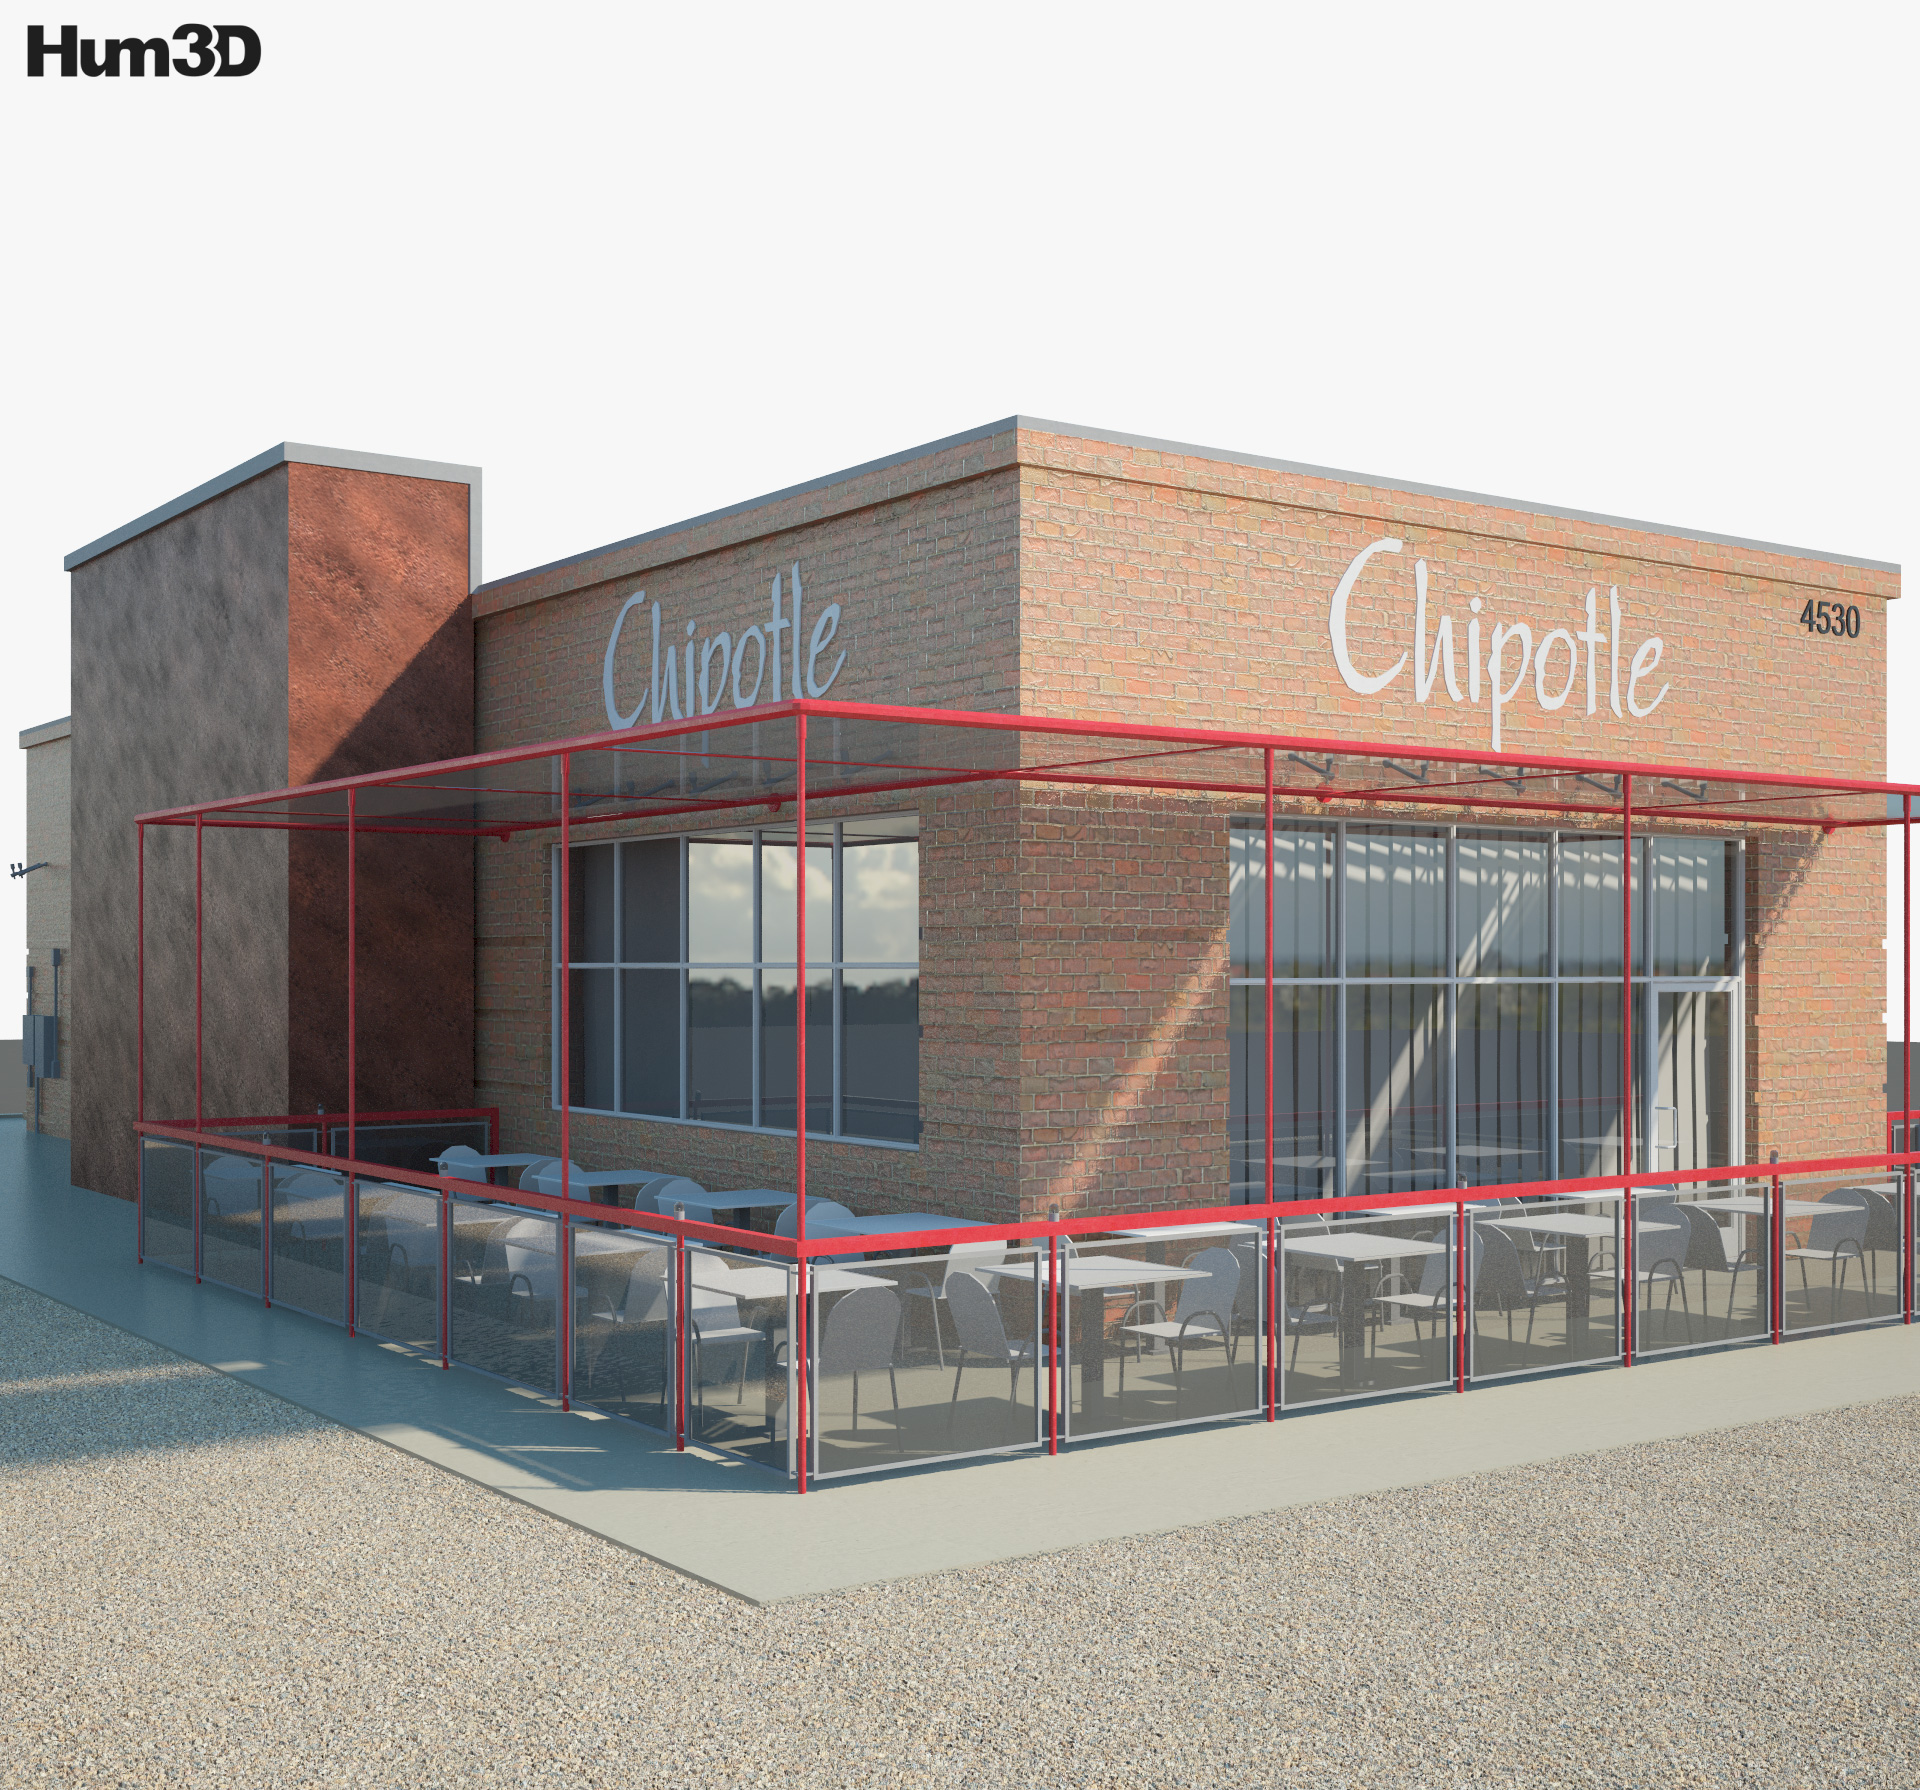 Chipotle Mexican Grill Restaurant 01 3d model